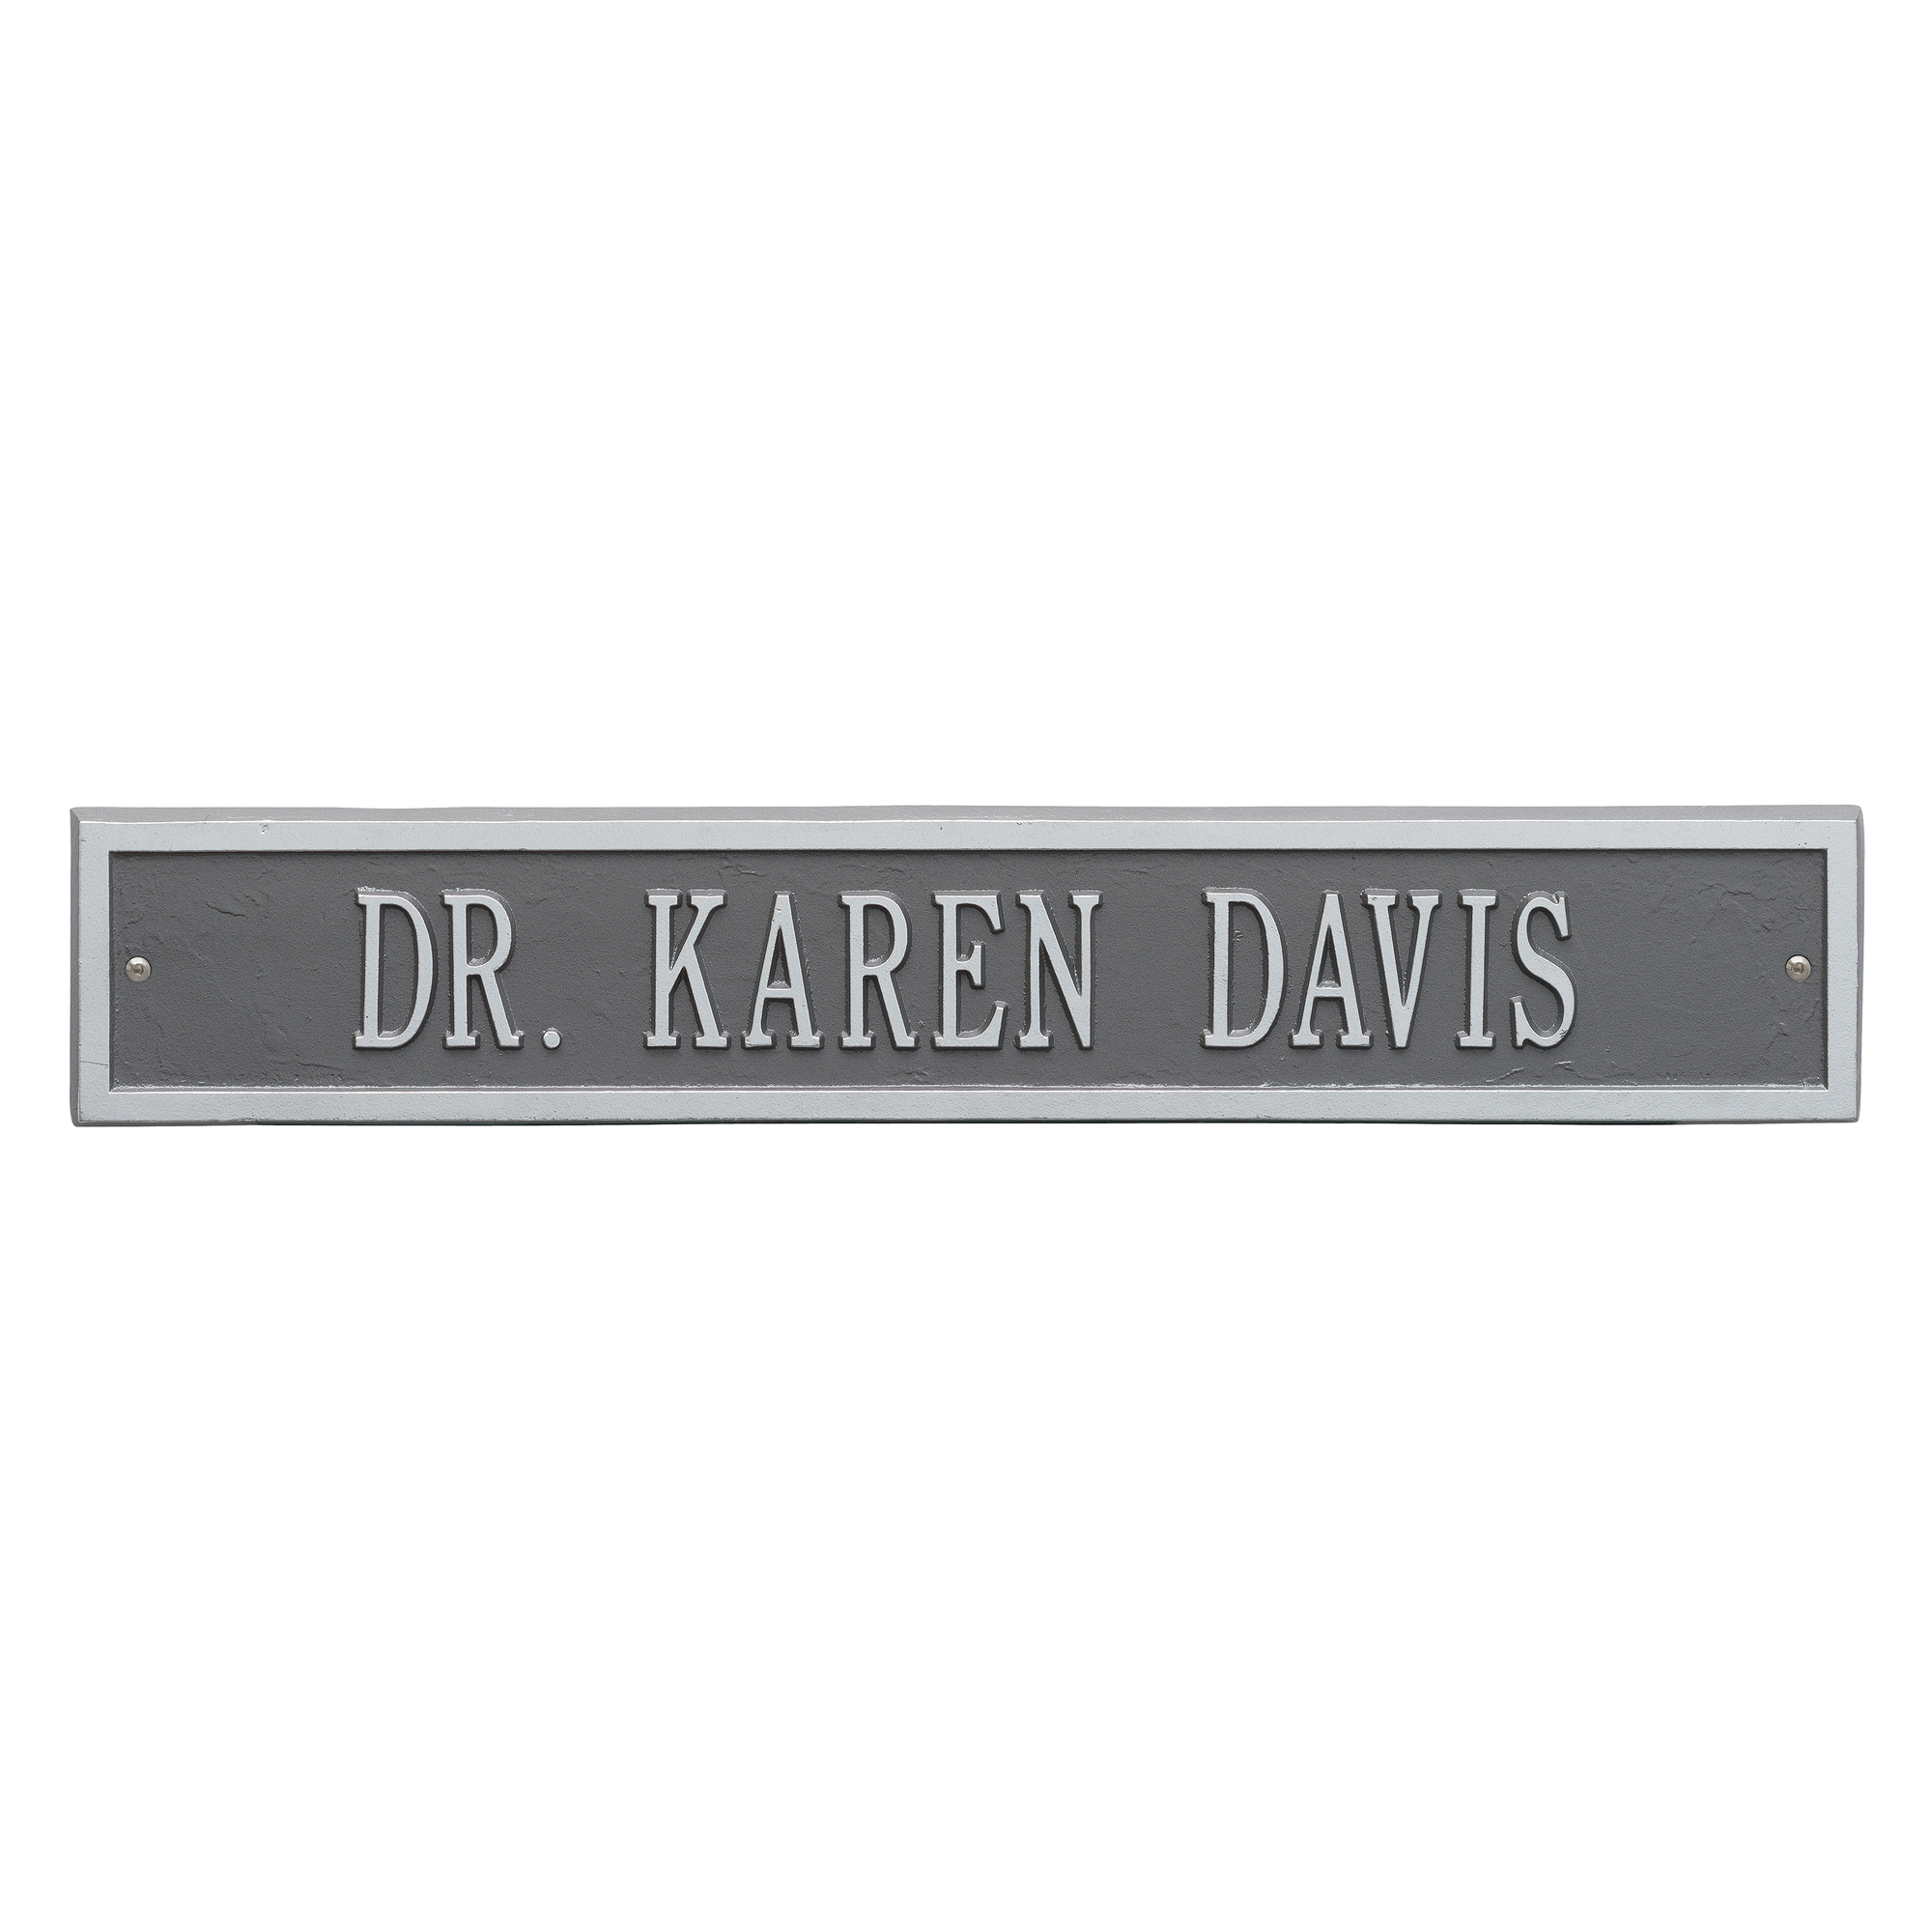 Personalized Whitehall Products One-Line Arch Extension Address Plaque in Pewter Silver by Whitehall